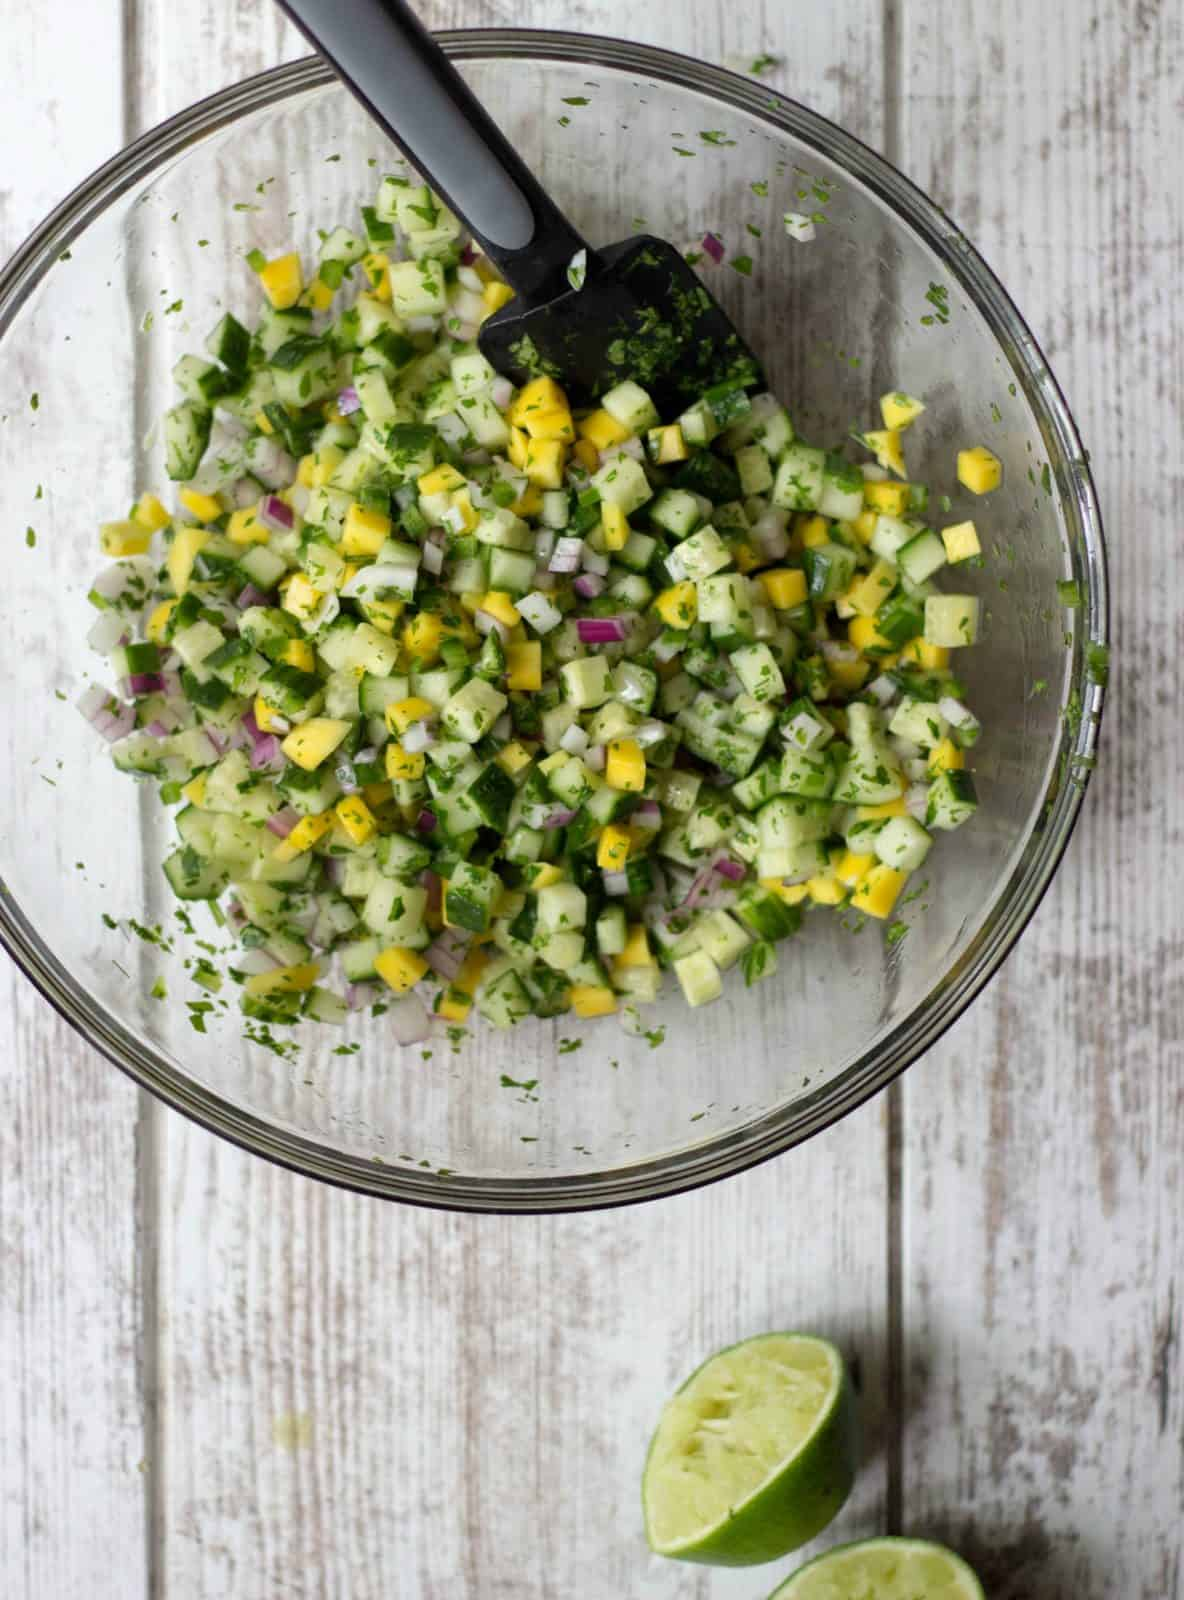 Mixed ingredients of Mango Cucumber Salsa in a glass bowl.